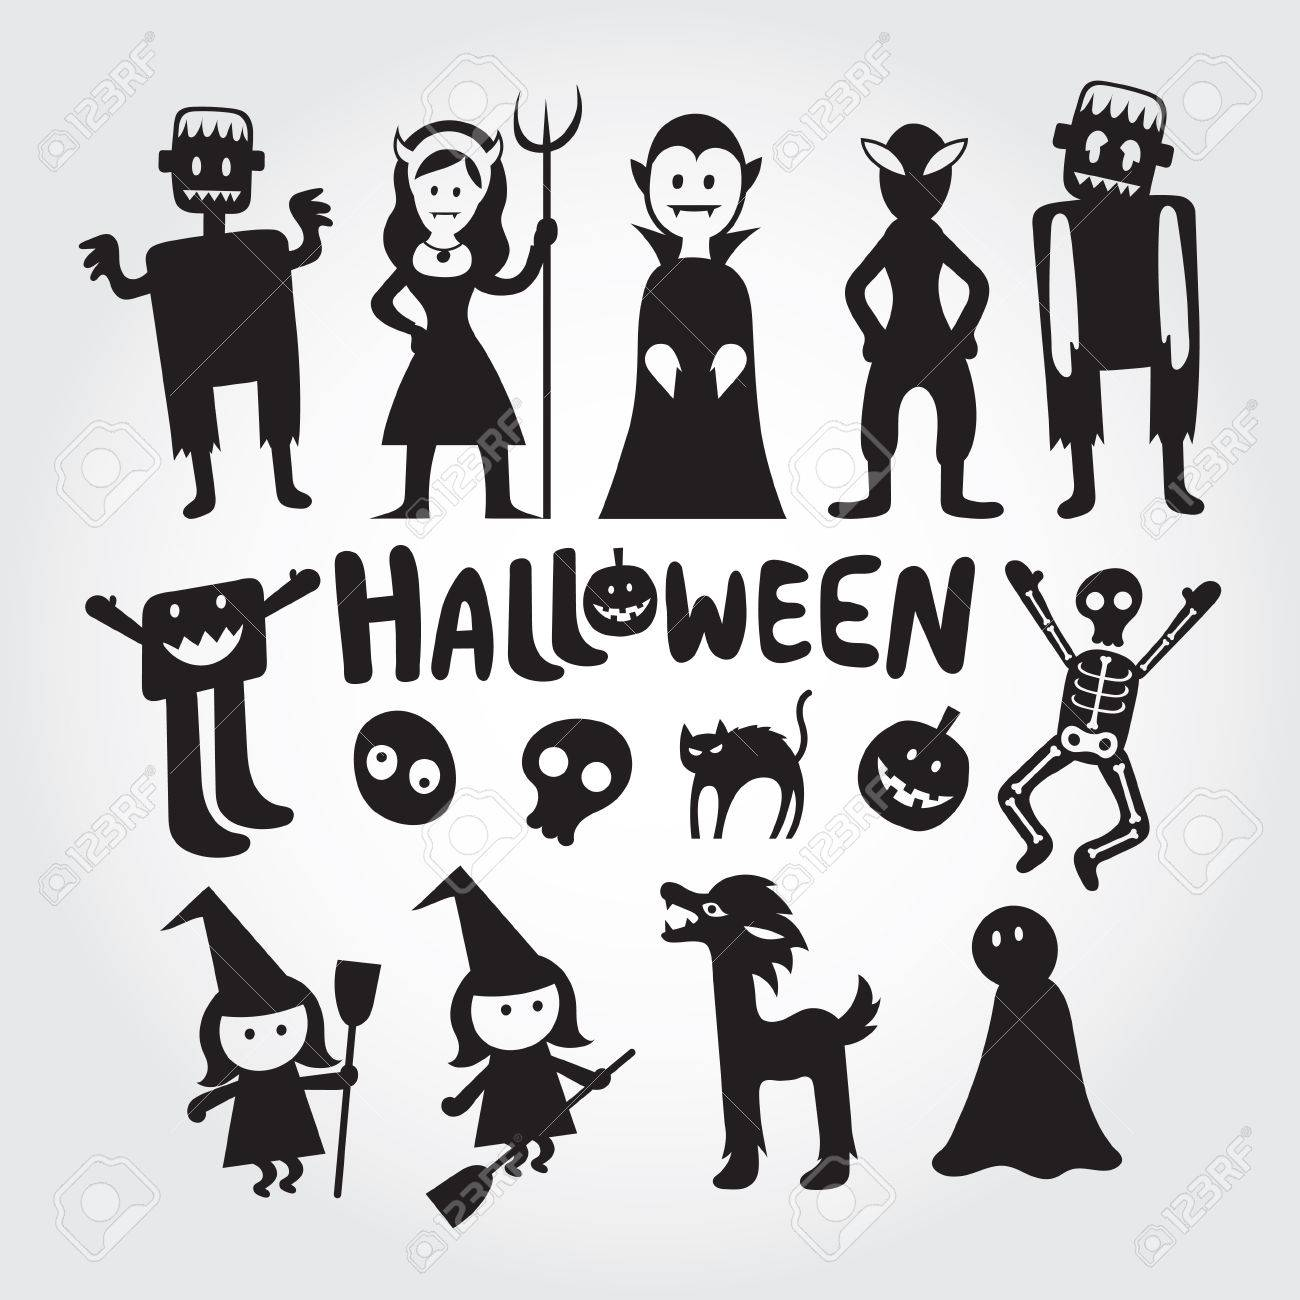 Halloween Monster Characters Set Silhouette Black And White Royalty Free Cliparts Vectors And Stock Illustration Image 86192101